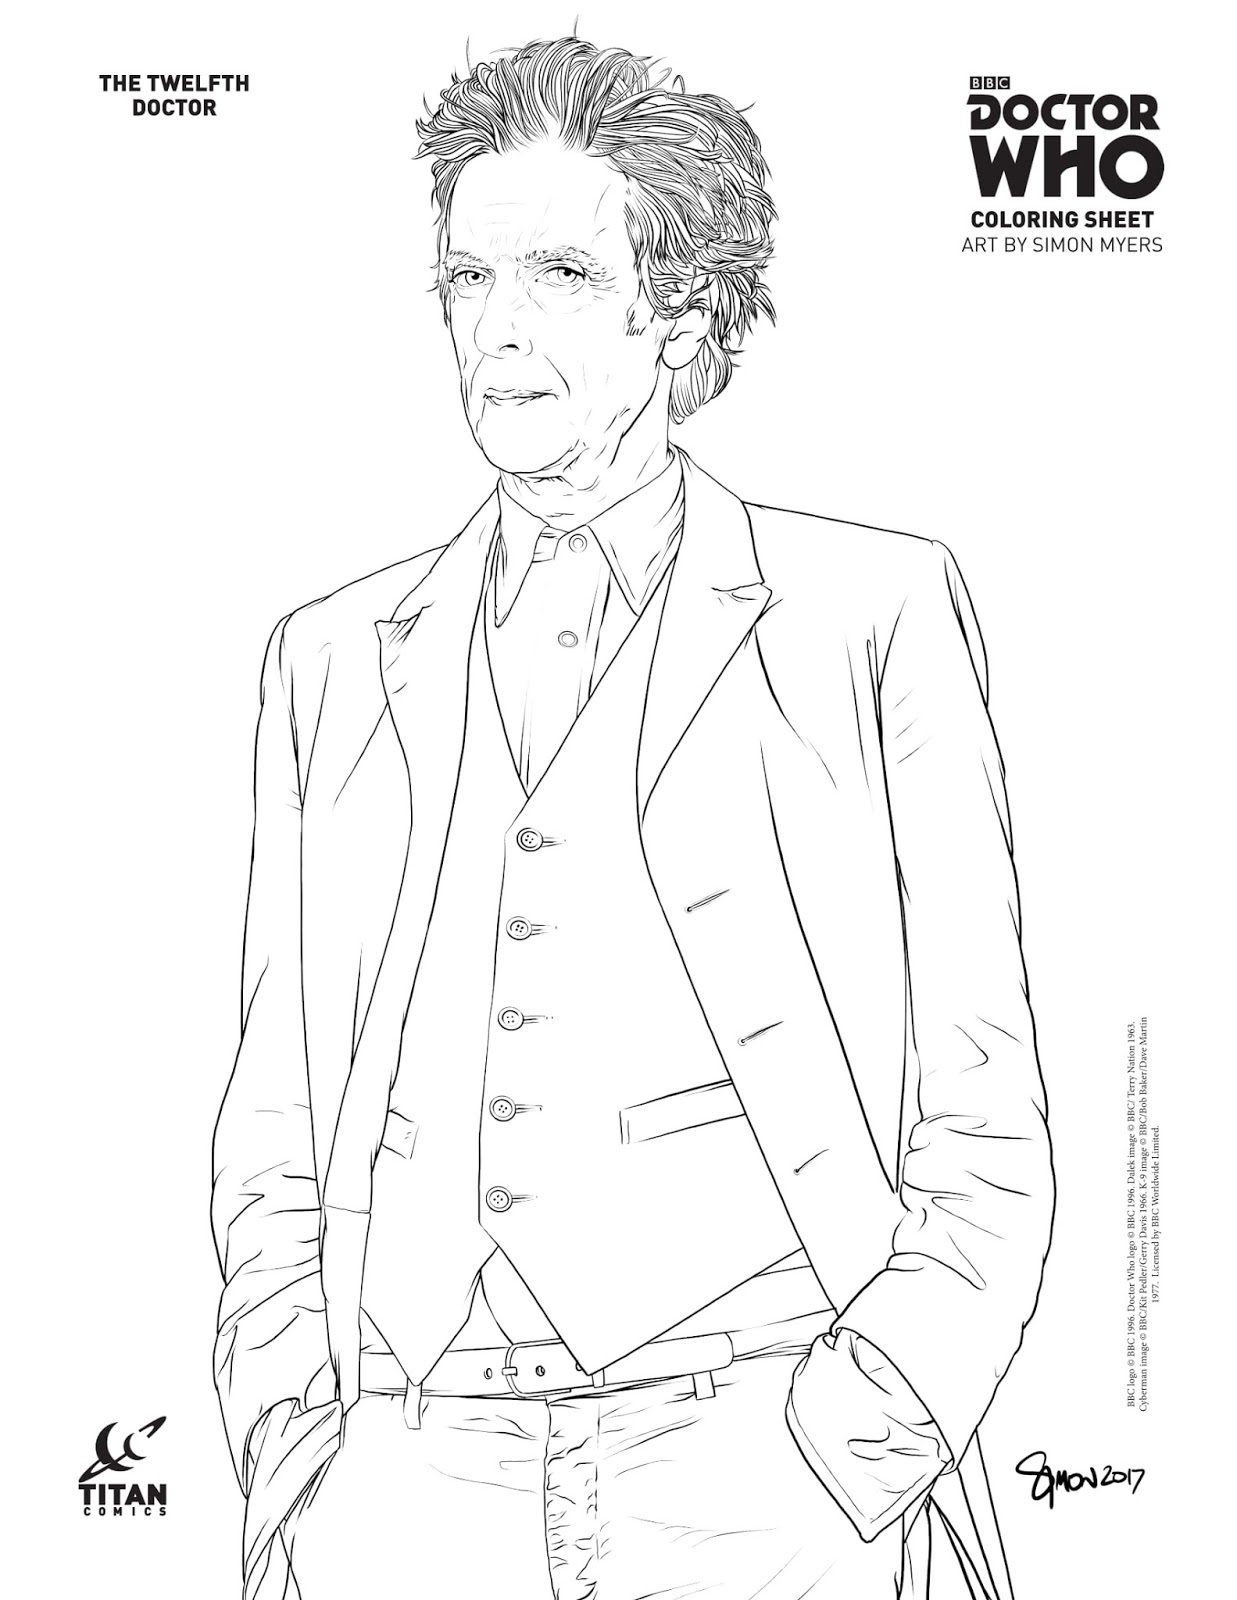 BBC Sherlock Coloring page by wasitelves on tumblr. | Drawings ... | 1600x1237